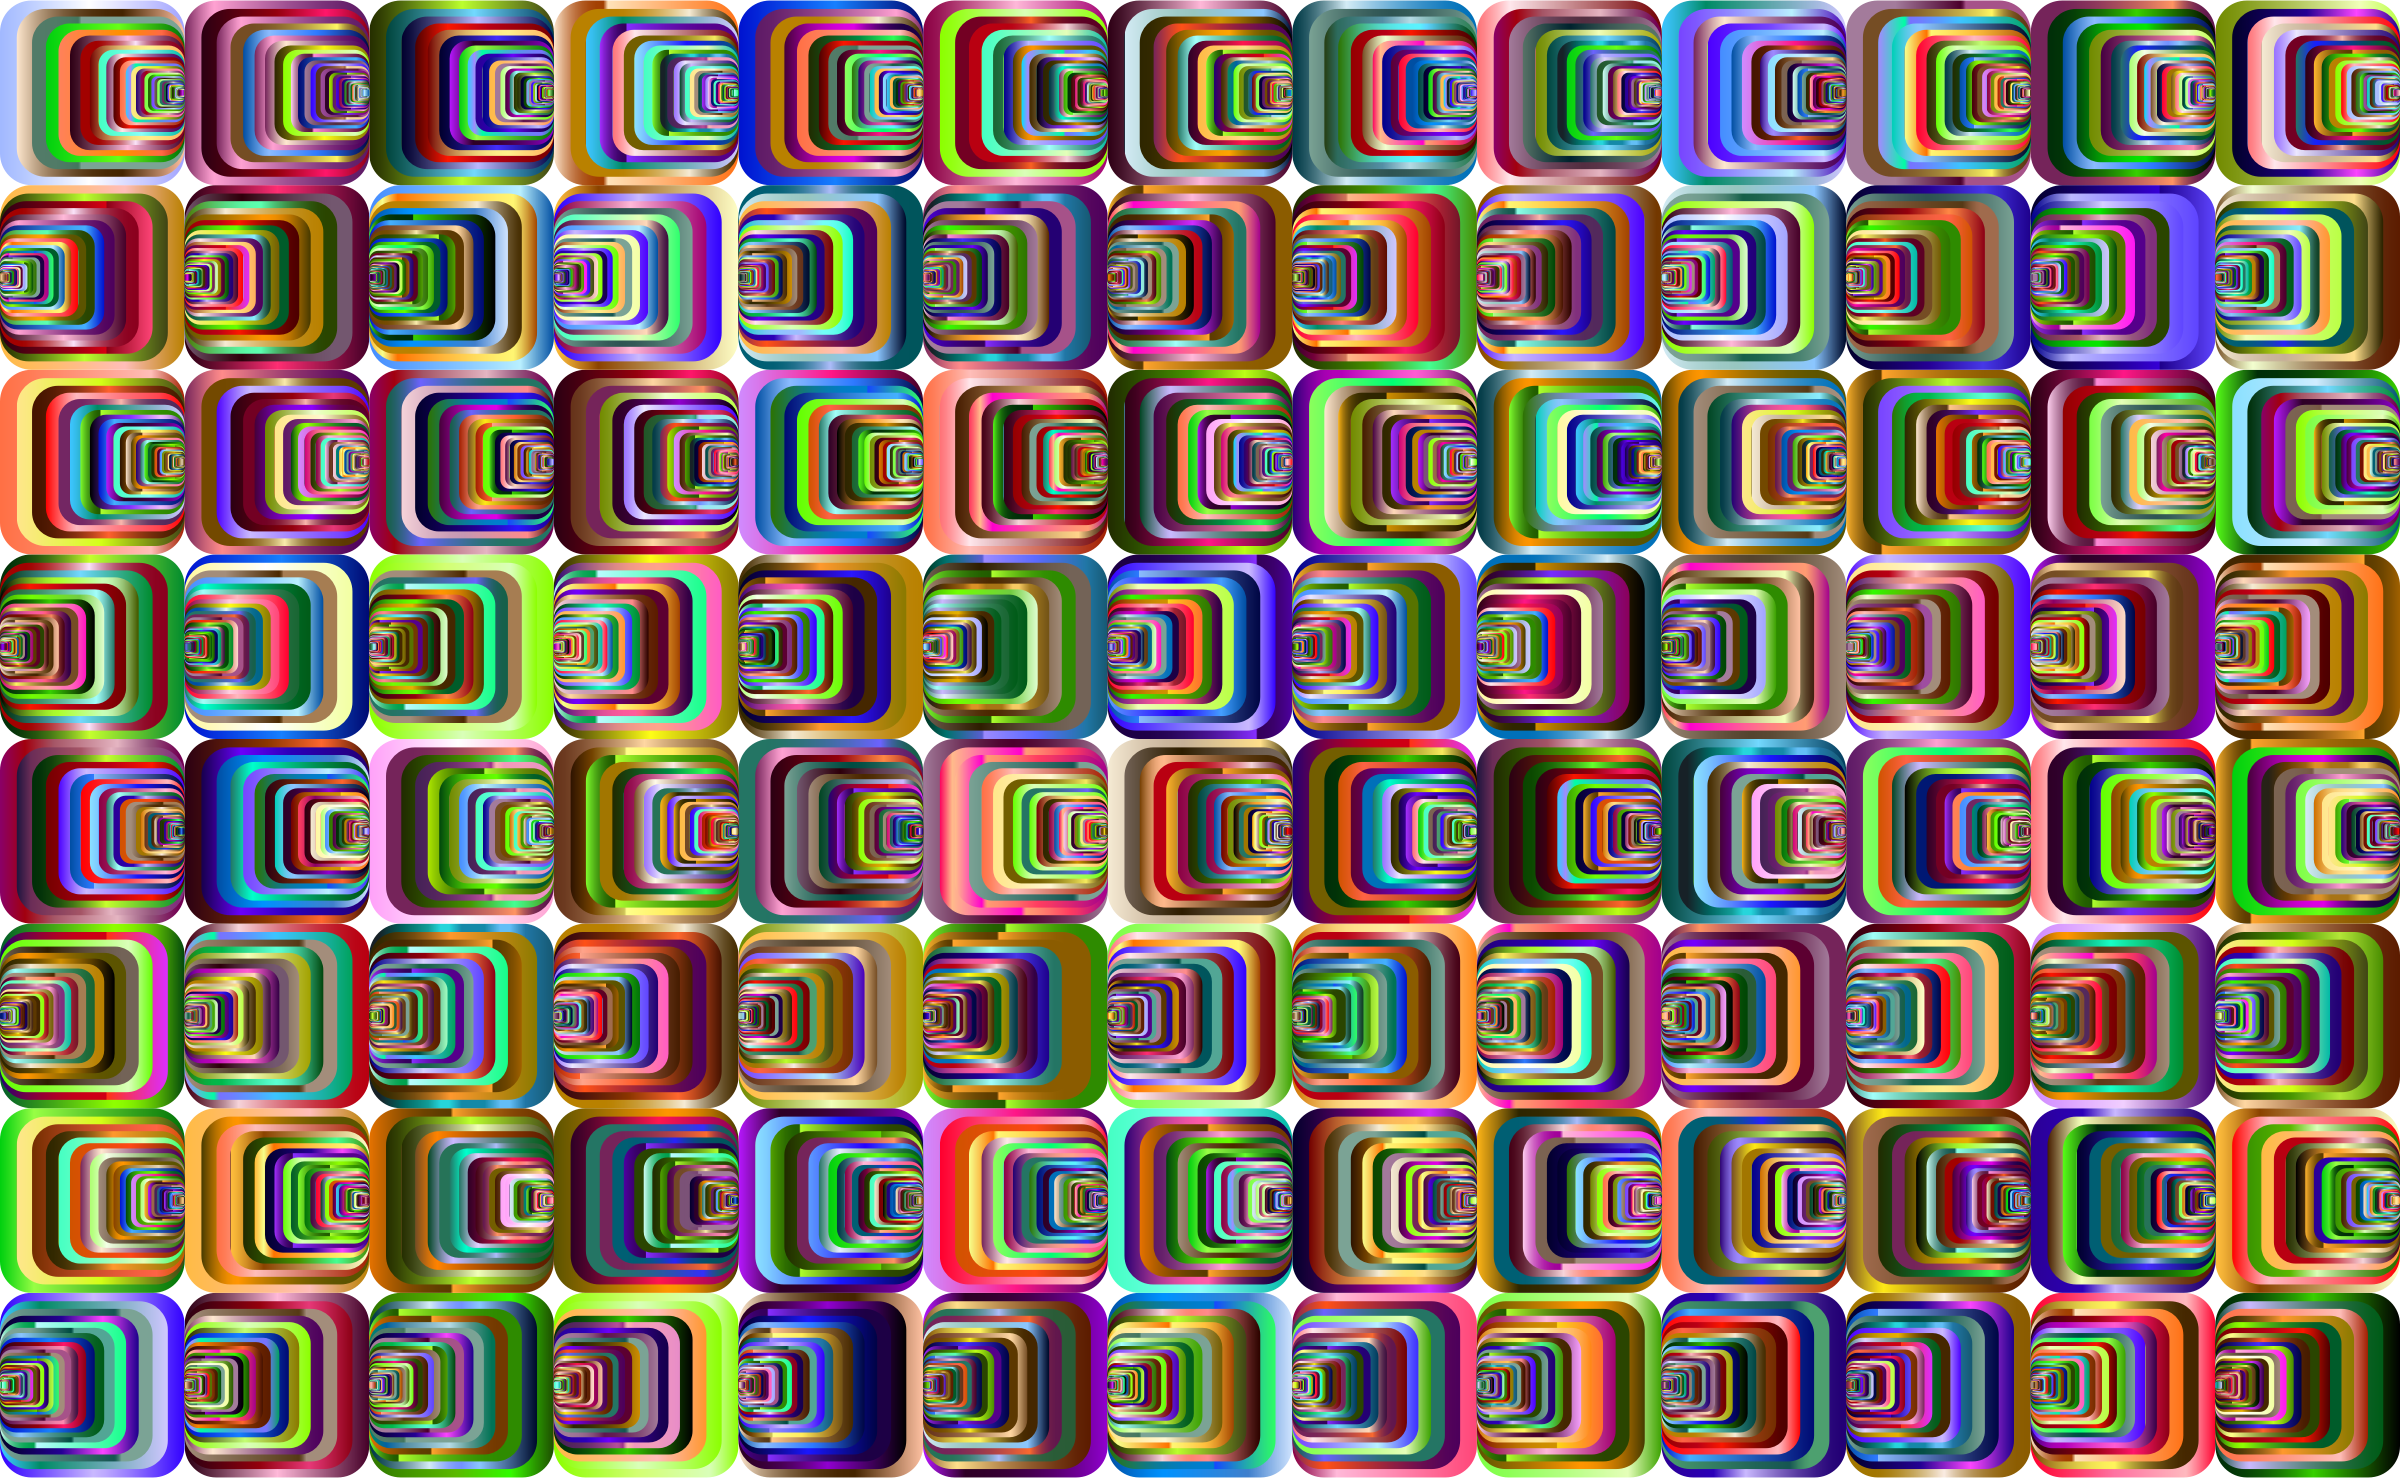 Prismatic Perspective Illusion 2 Pattern 3 by GDJ